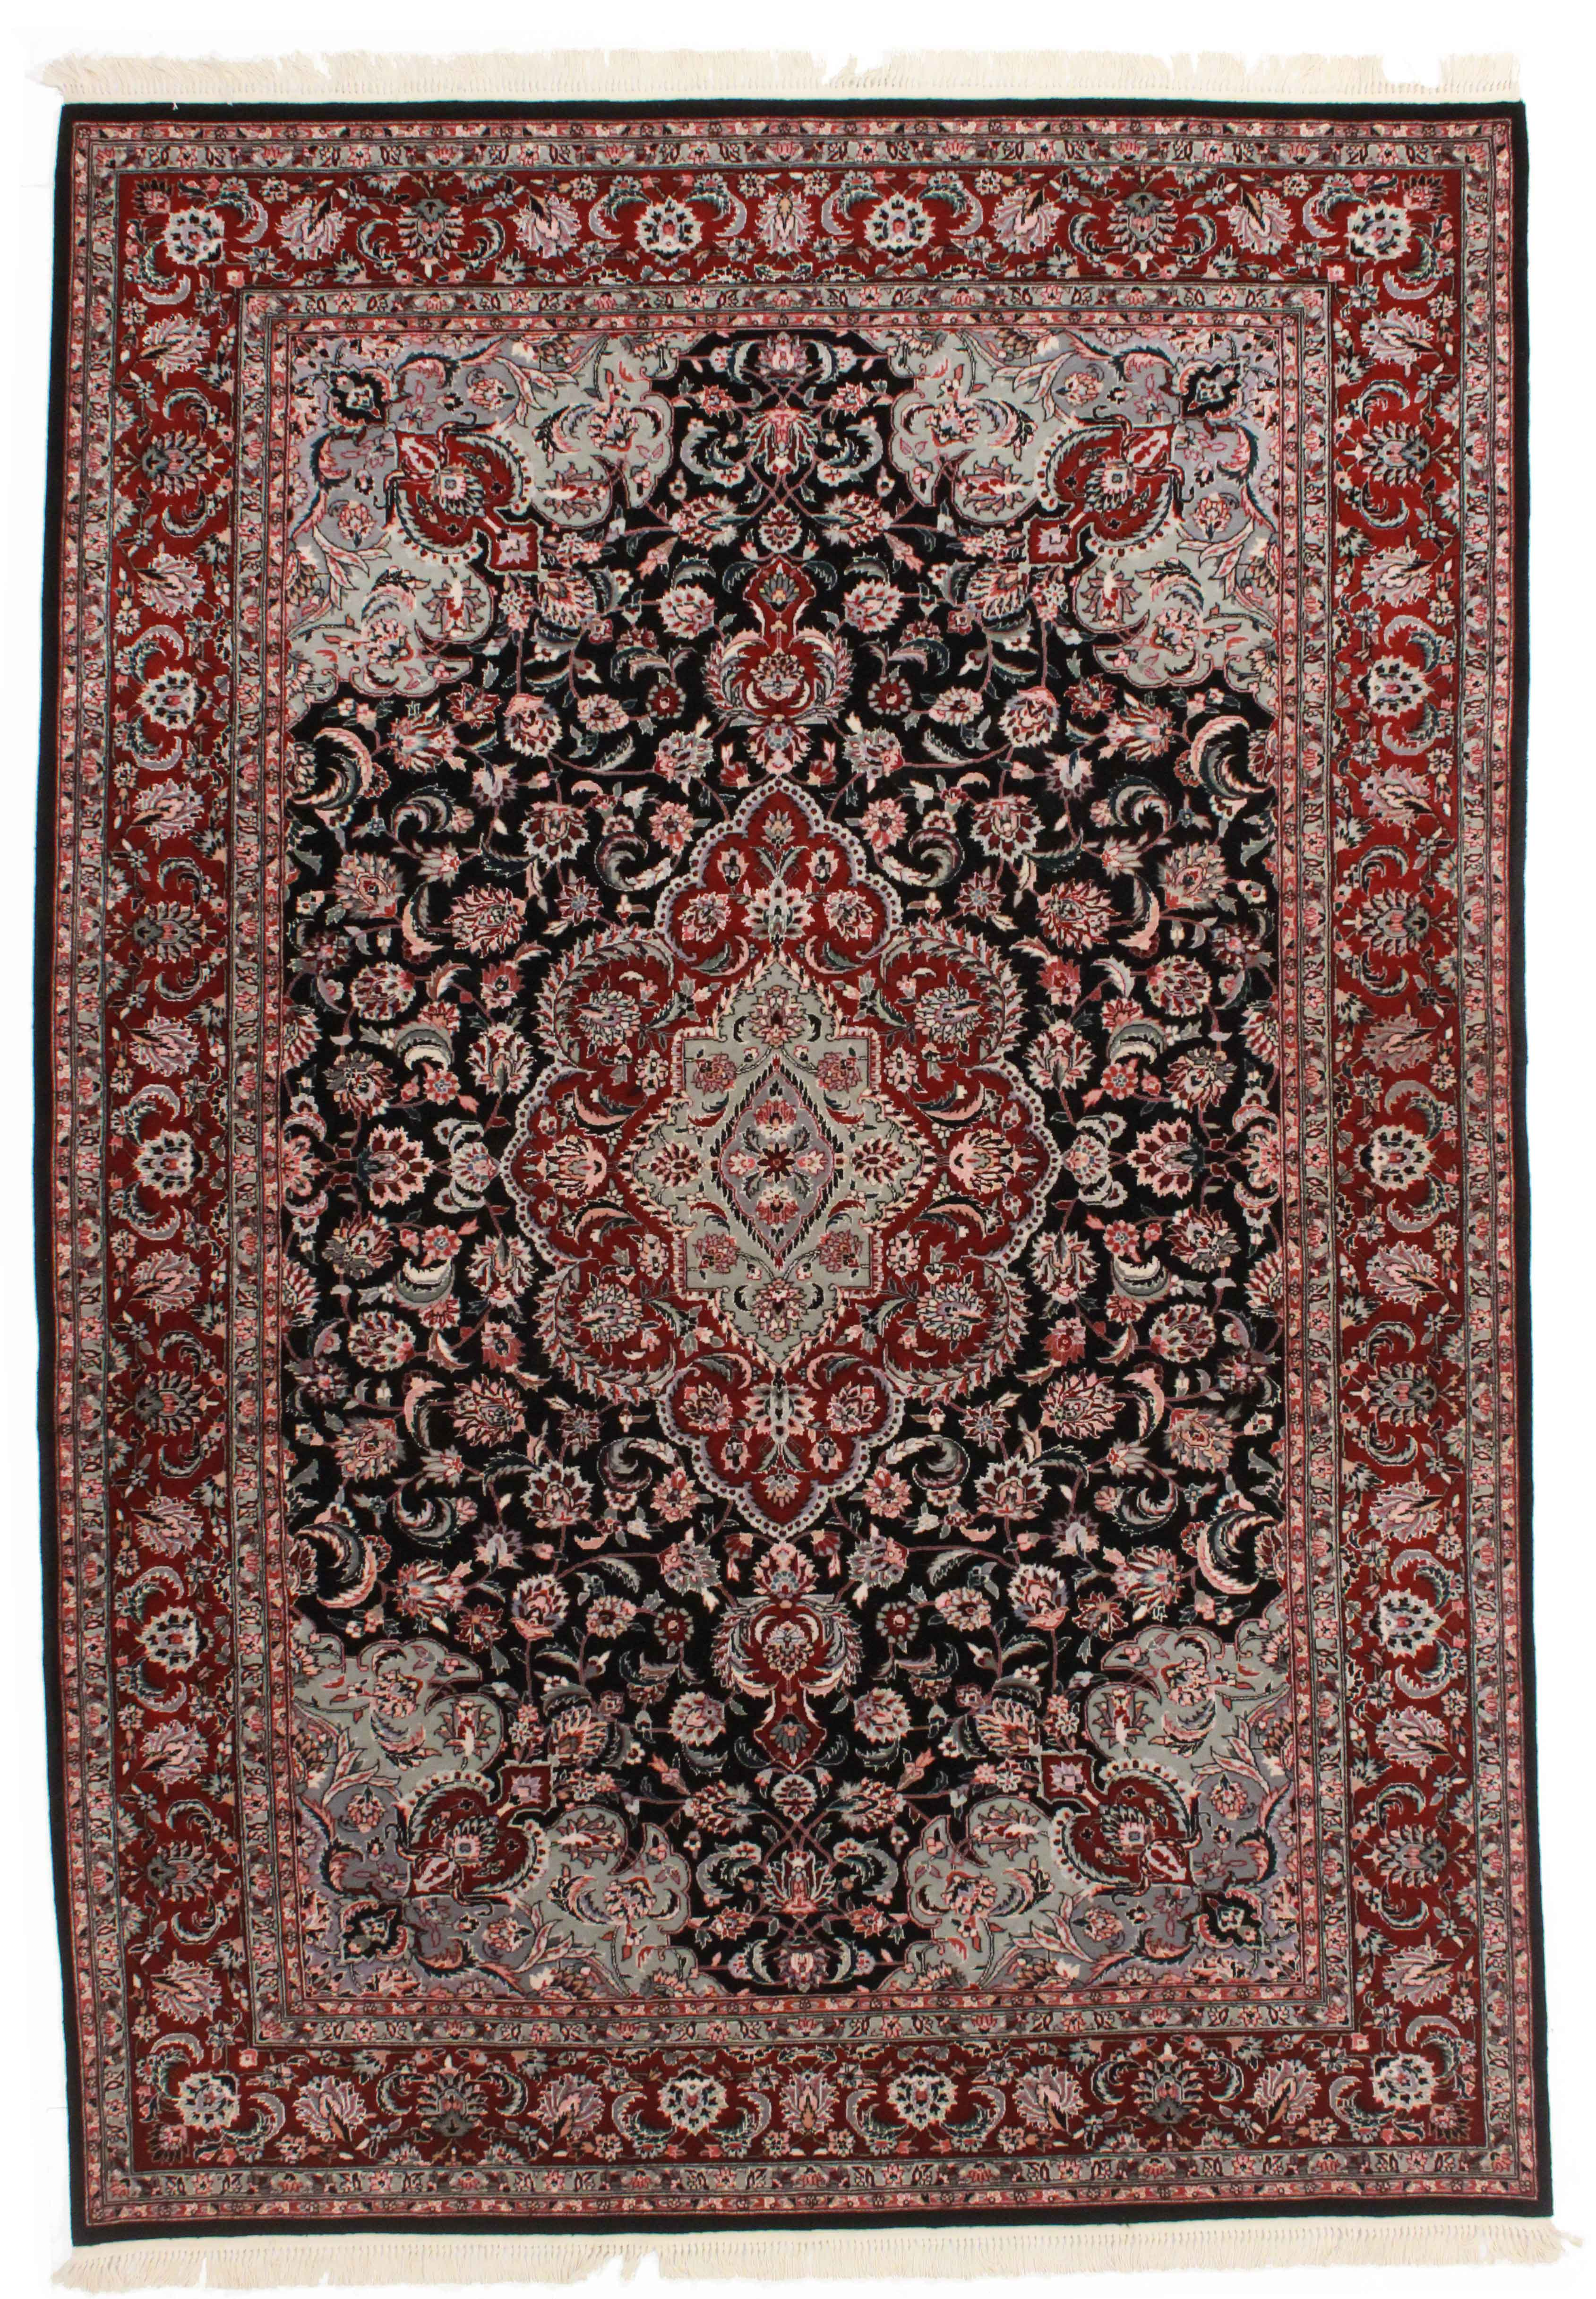 6 4 X 9 2 Hand Knotted Wool Chinese Rug 14231 Exclusive Oriental